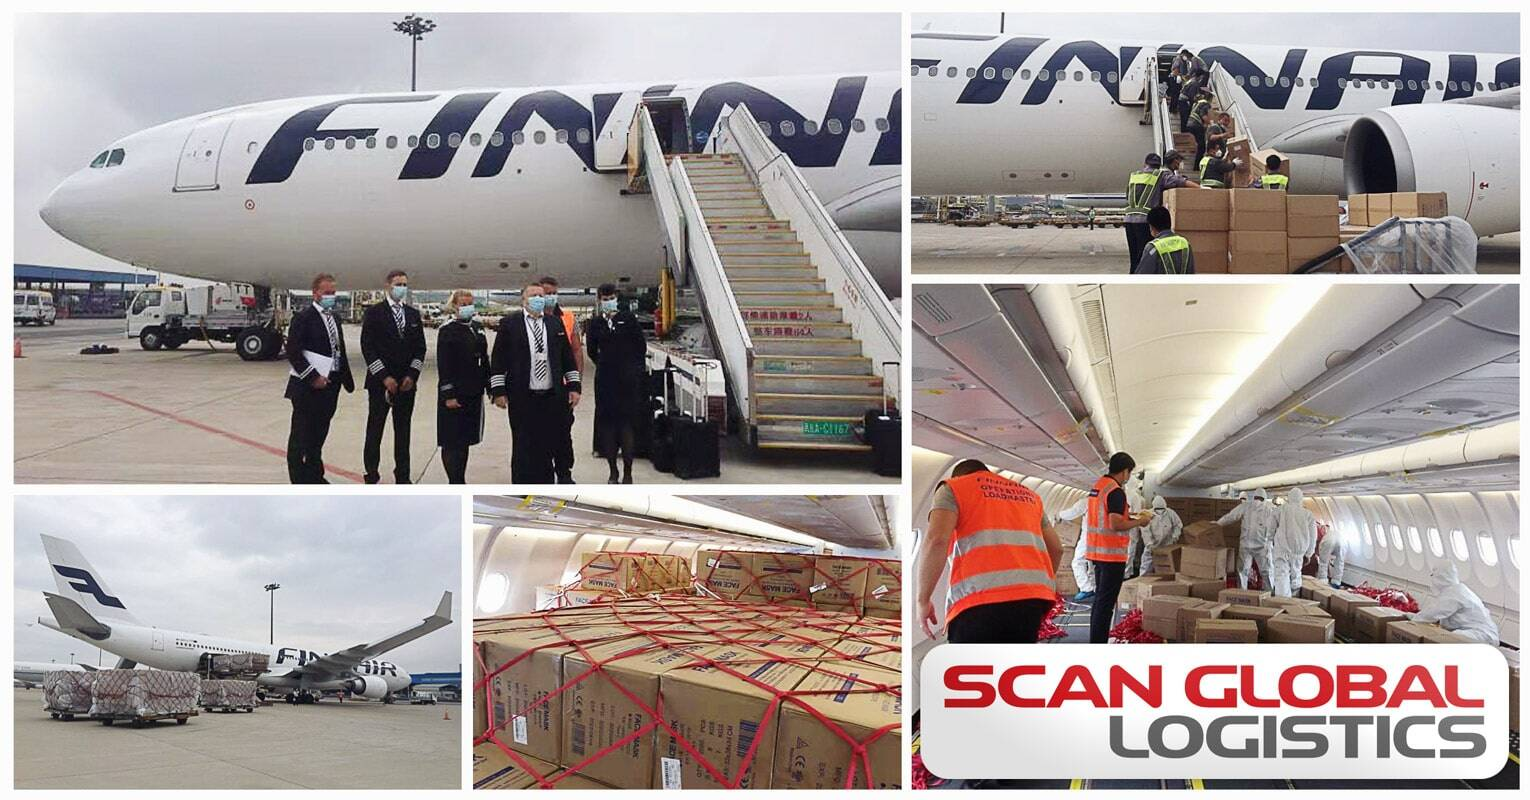 Scan Global Logistics Delivered 6 Million Face Masks Filling 200 CBM, Weighing 24 Tons from Beijing to Finland